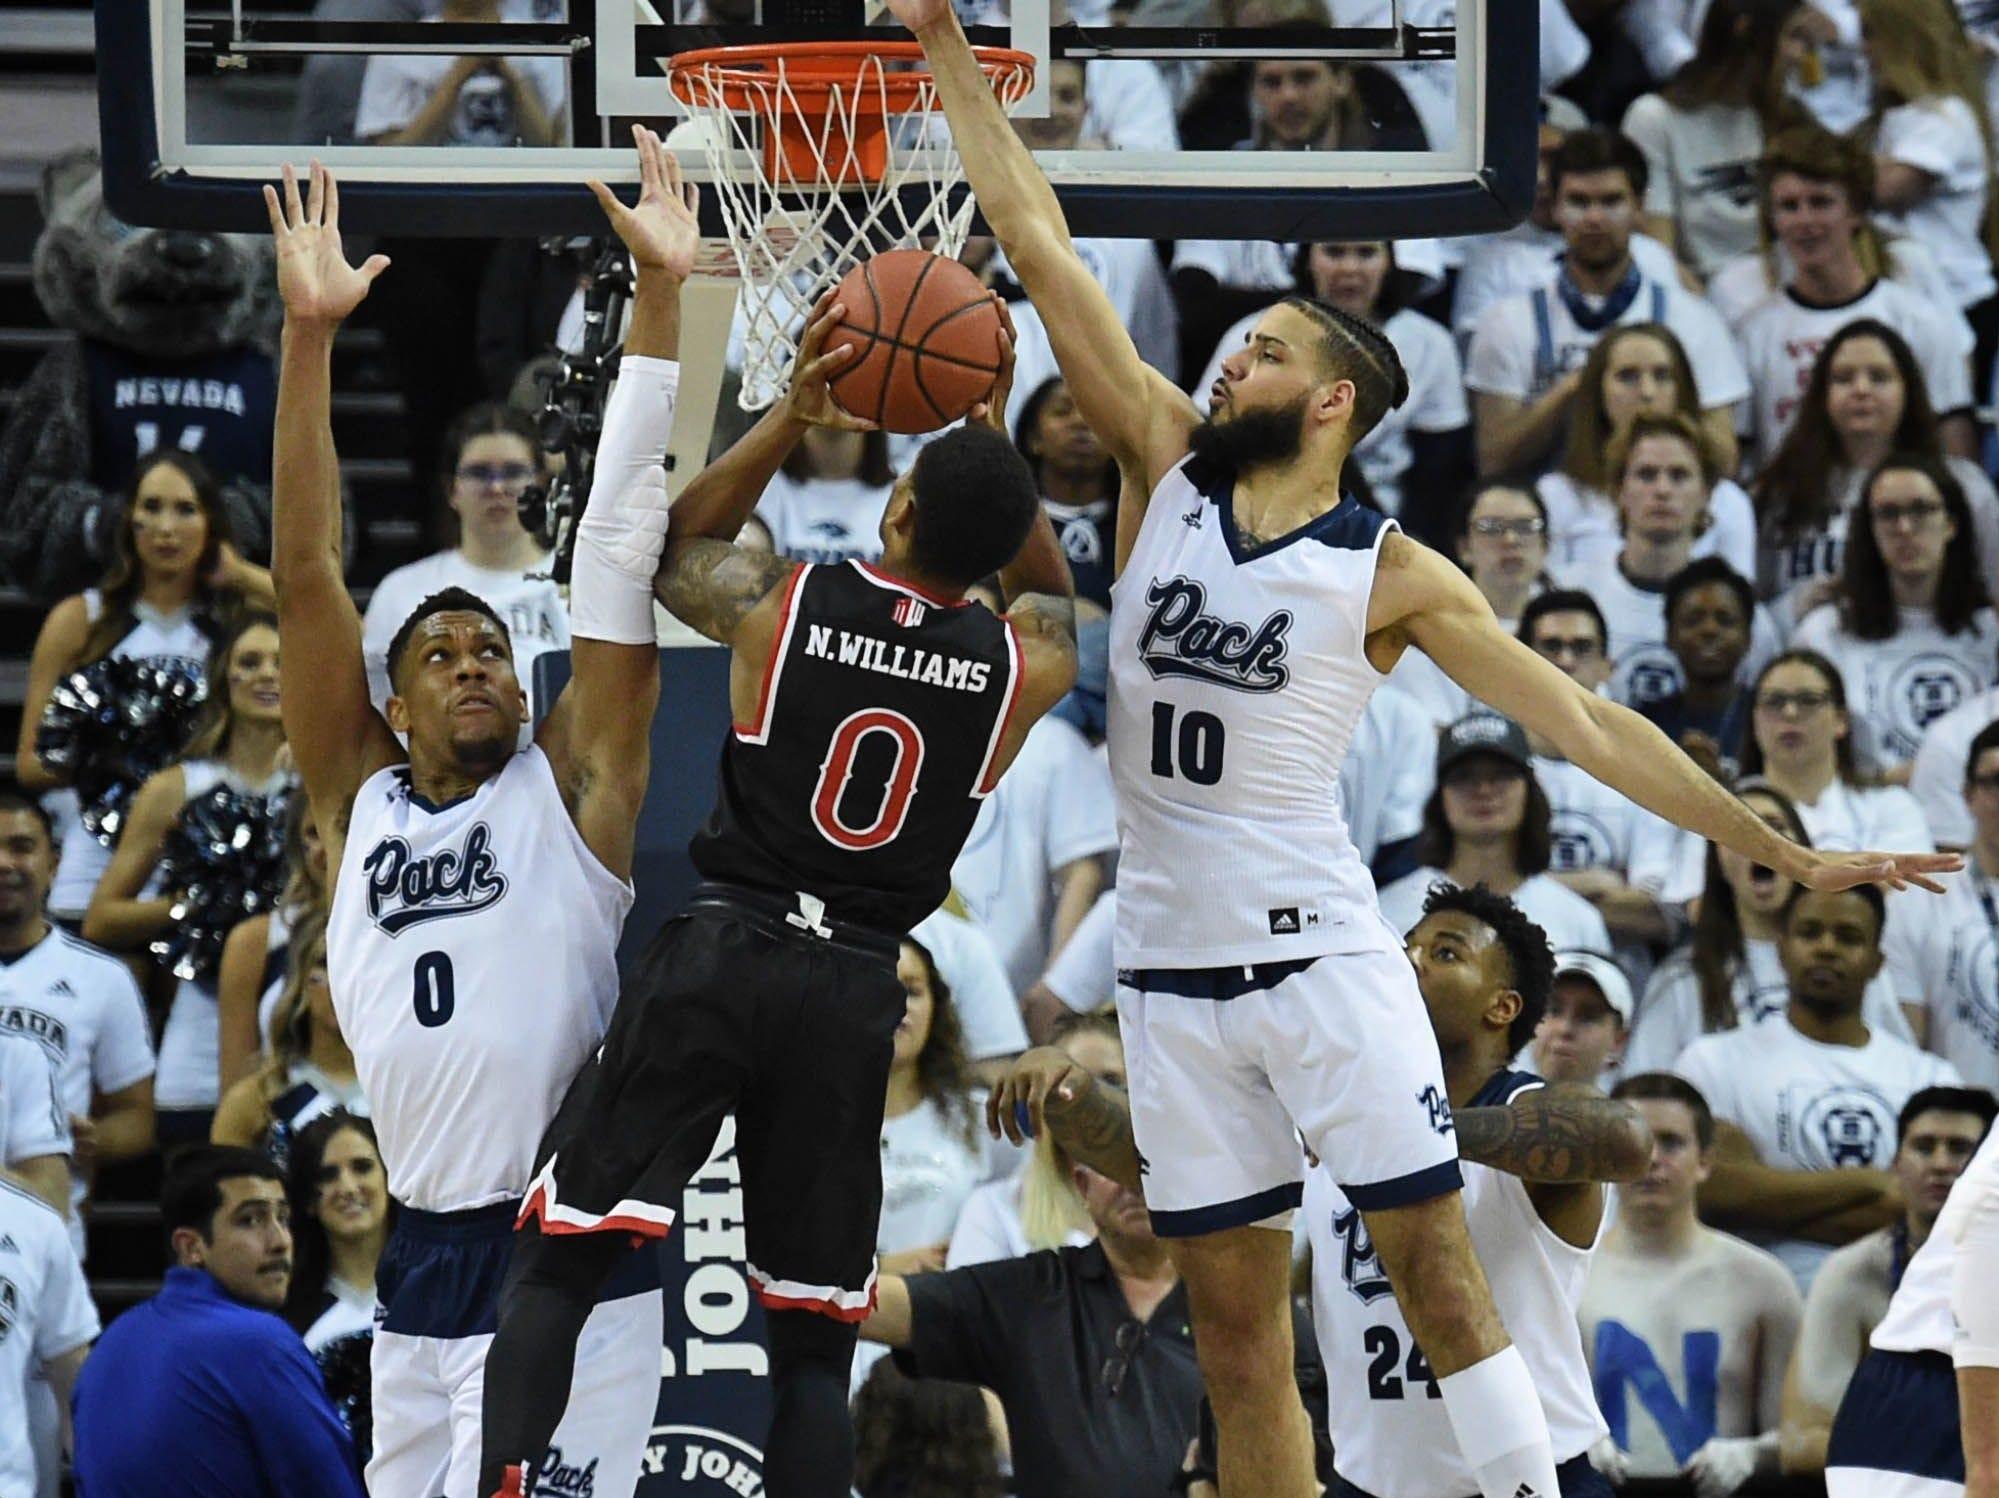 Nevada's Tre' Shawn Thurman, left, and Caleb Martin defend against Fresno State's New Williams at Lawlor Events Center.